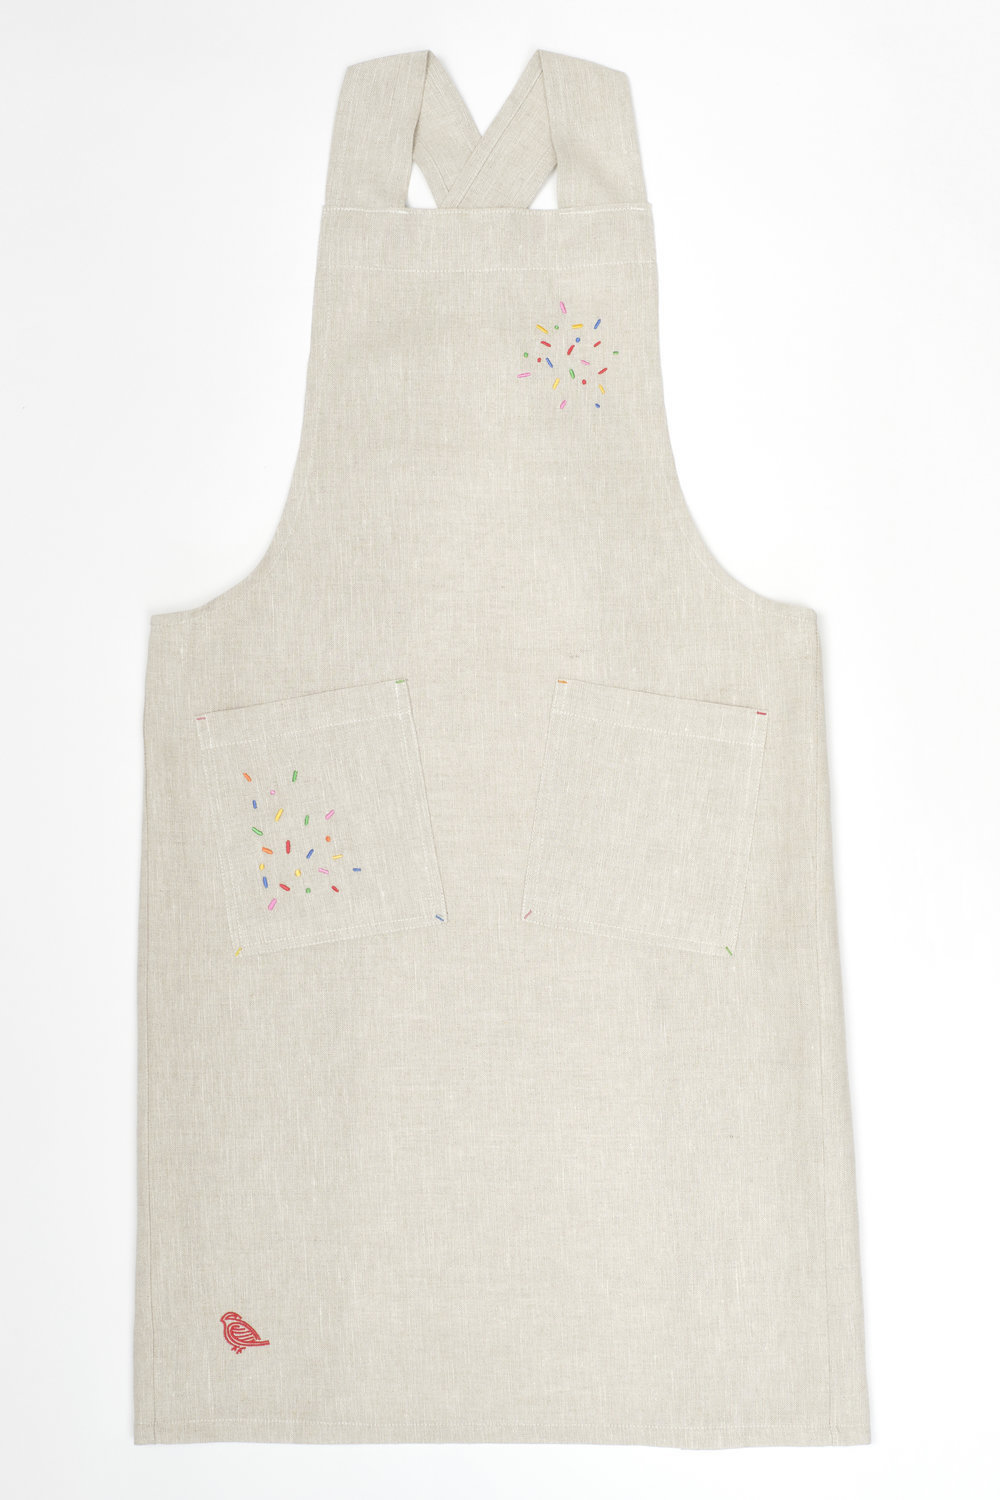 linen apron with embroidered sprinkles detailing